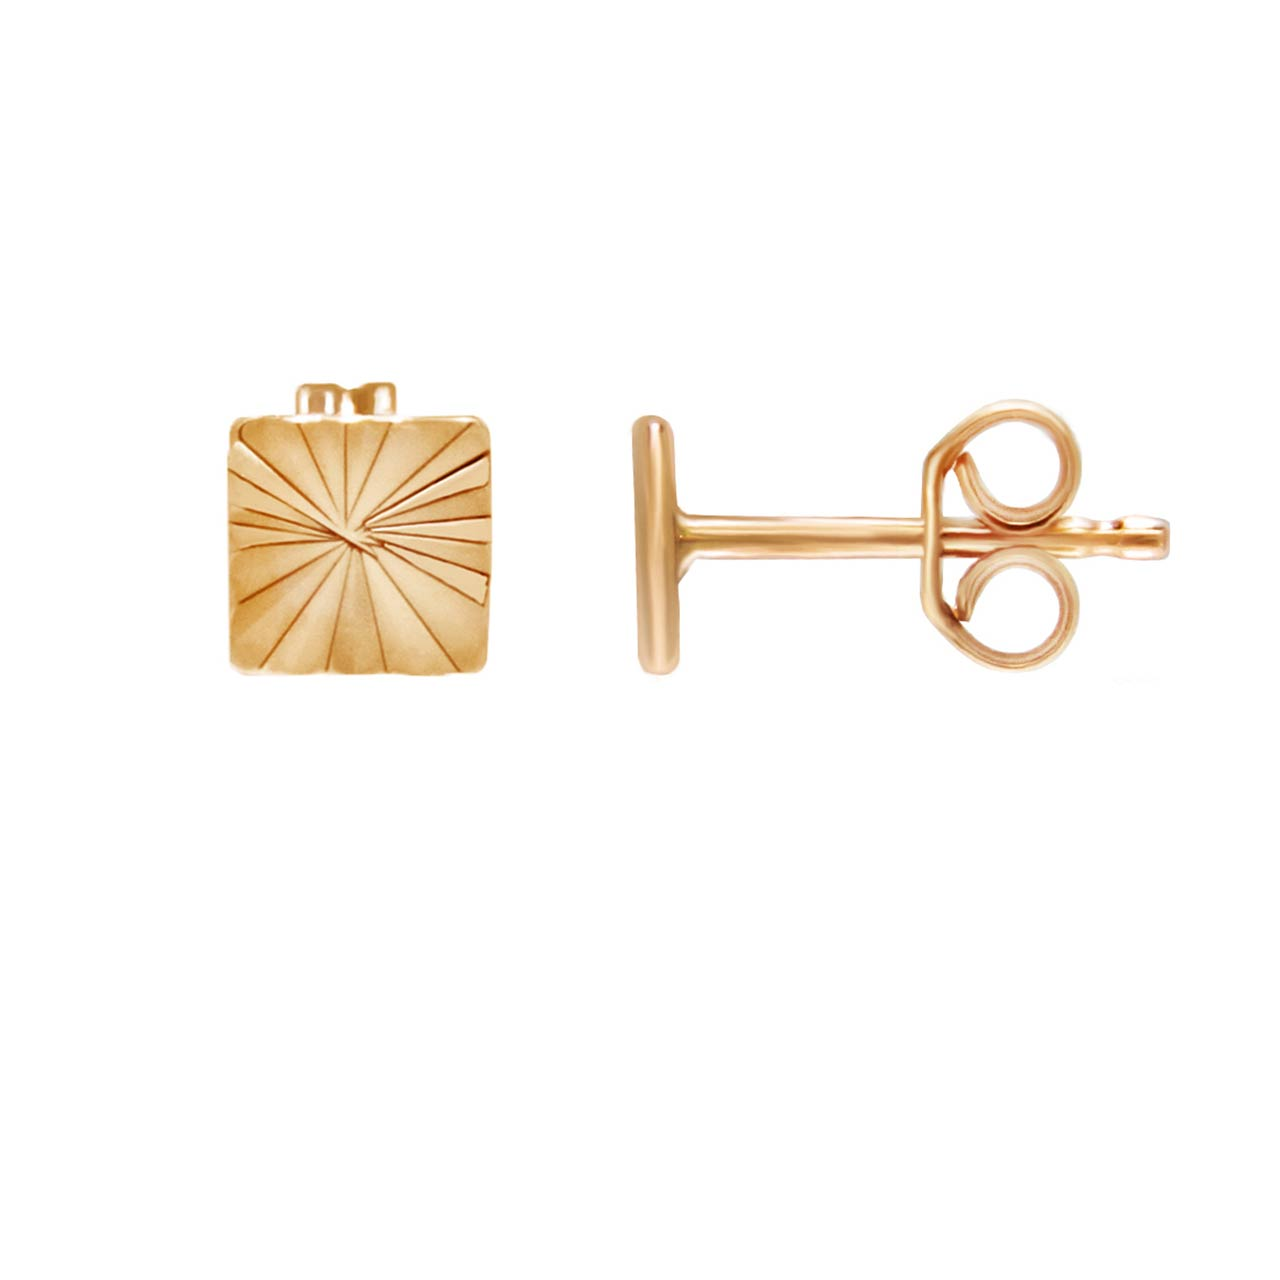 Gold Stud Earrings. Gold Chain Earrings